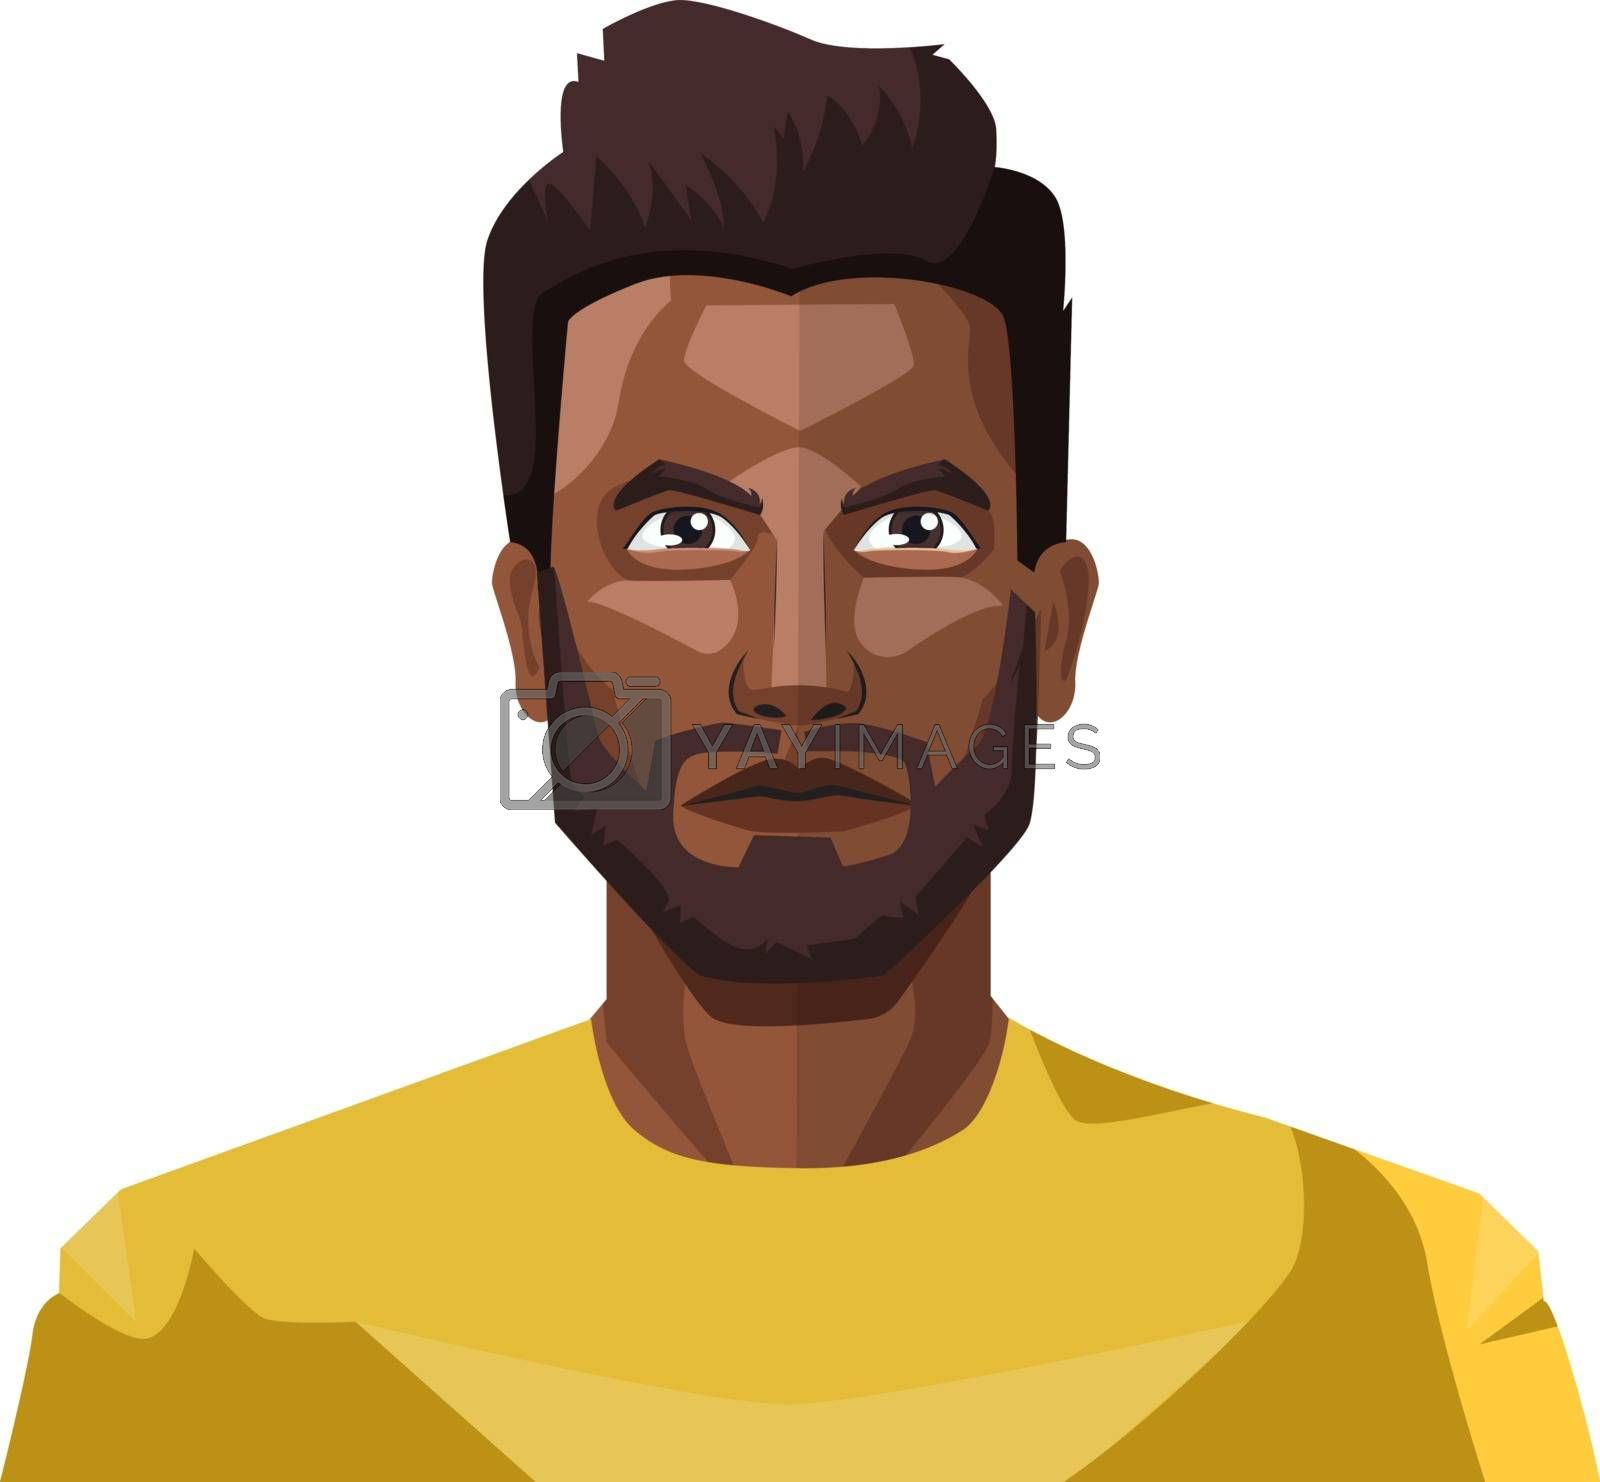 Royalty free image of Handsome guy with beard and short hair illustration vector on wh by Morphart